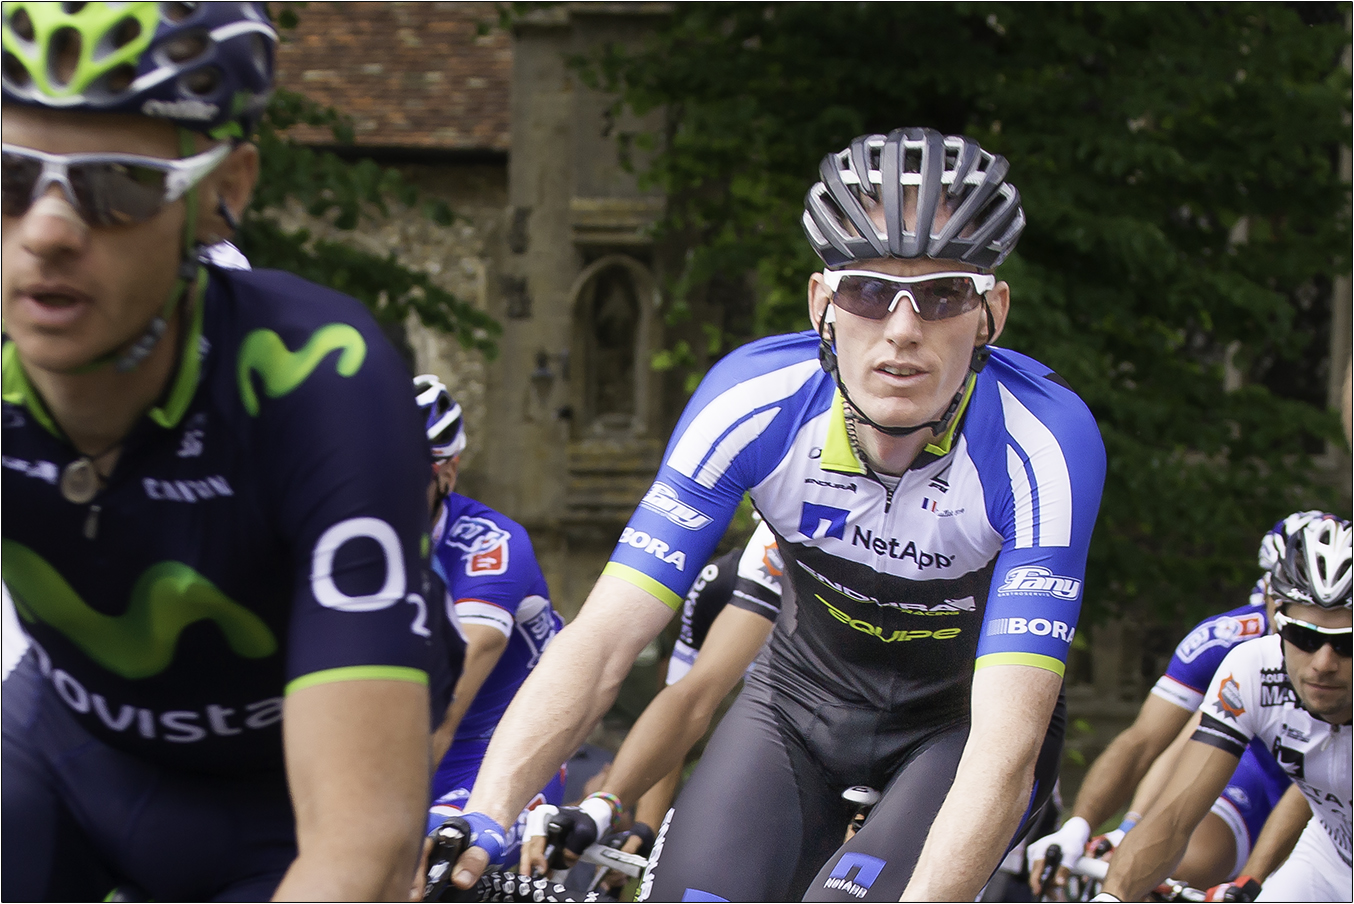 TOUR DE FRANCE IN RURAL ESSEX by Andy Smith